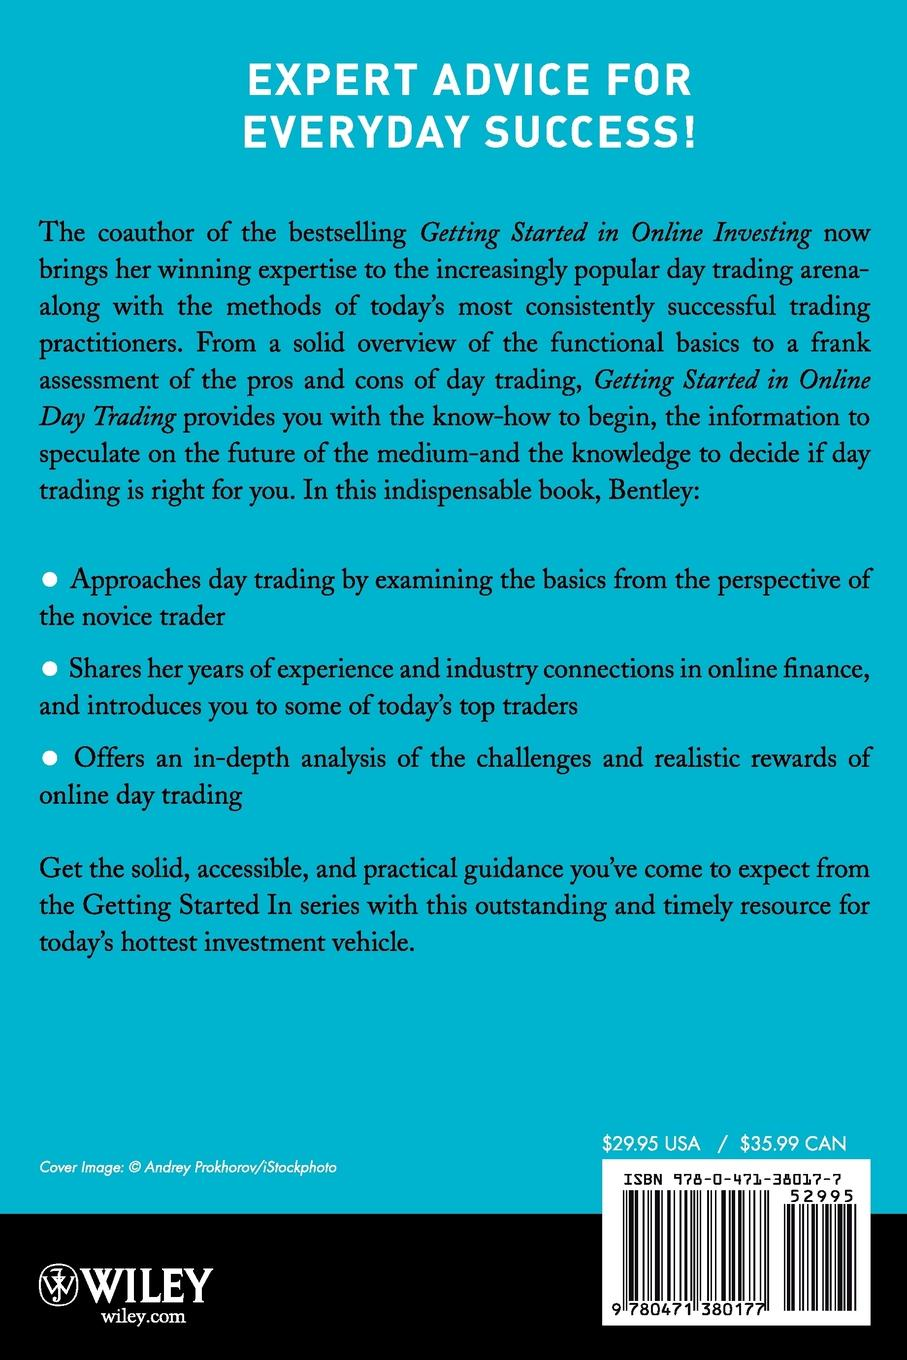 Bentley GSI Online Day Trading ann c logue day trading for dummies